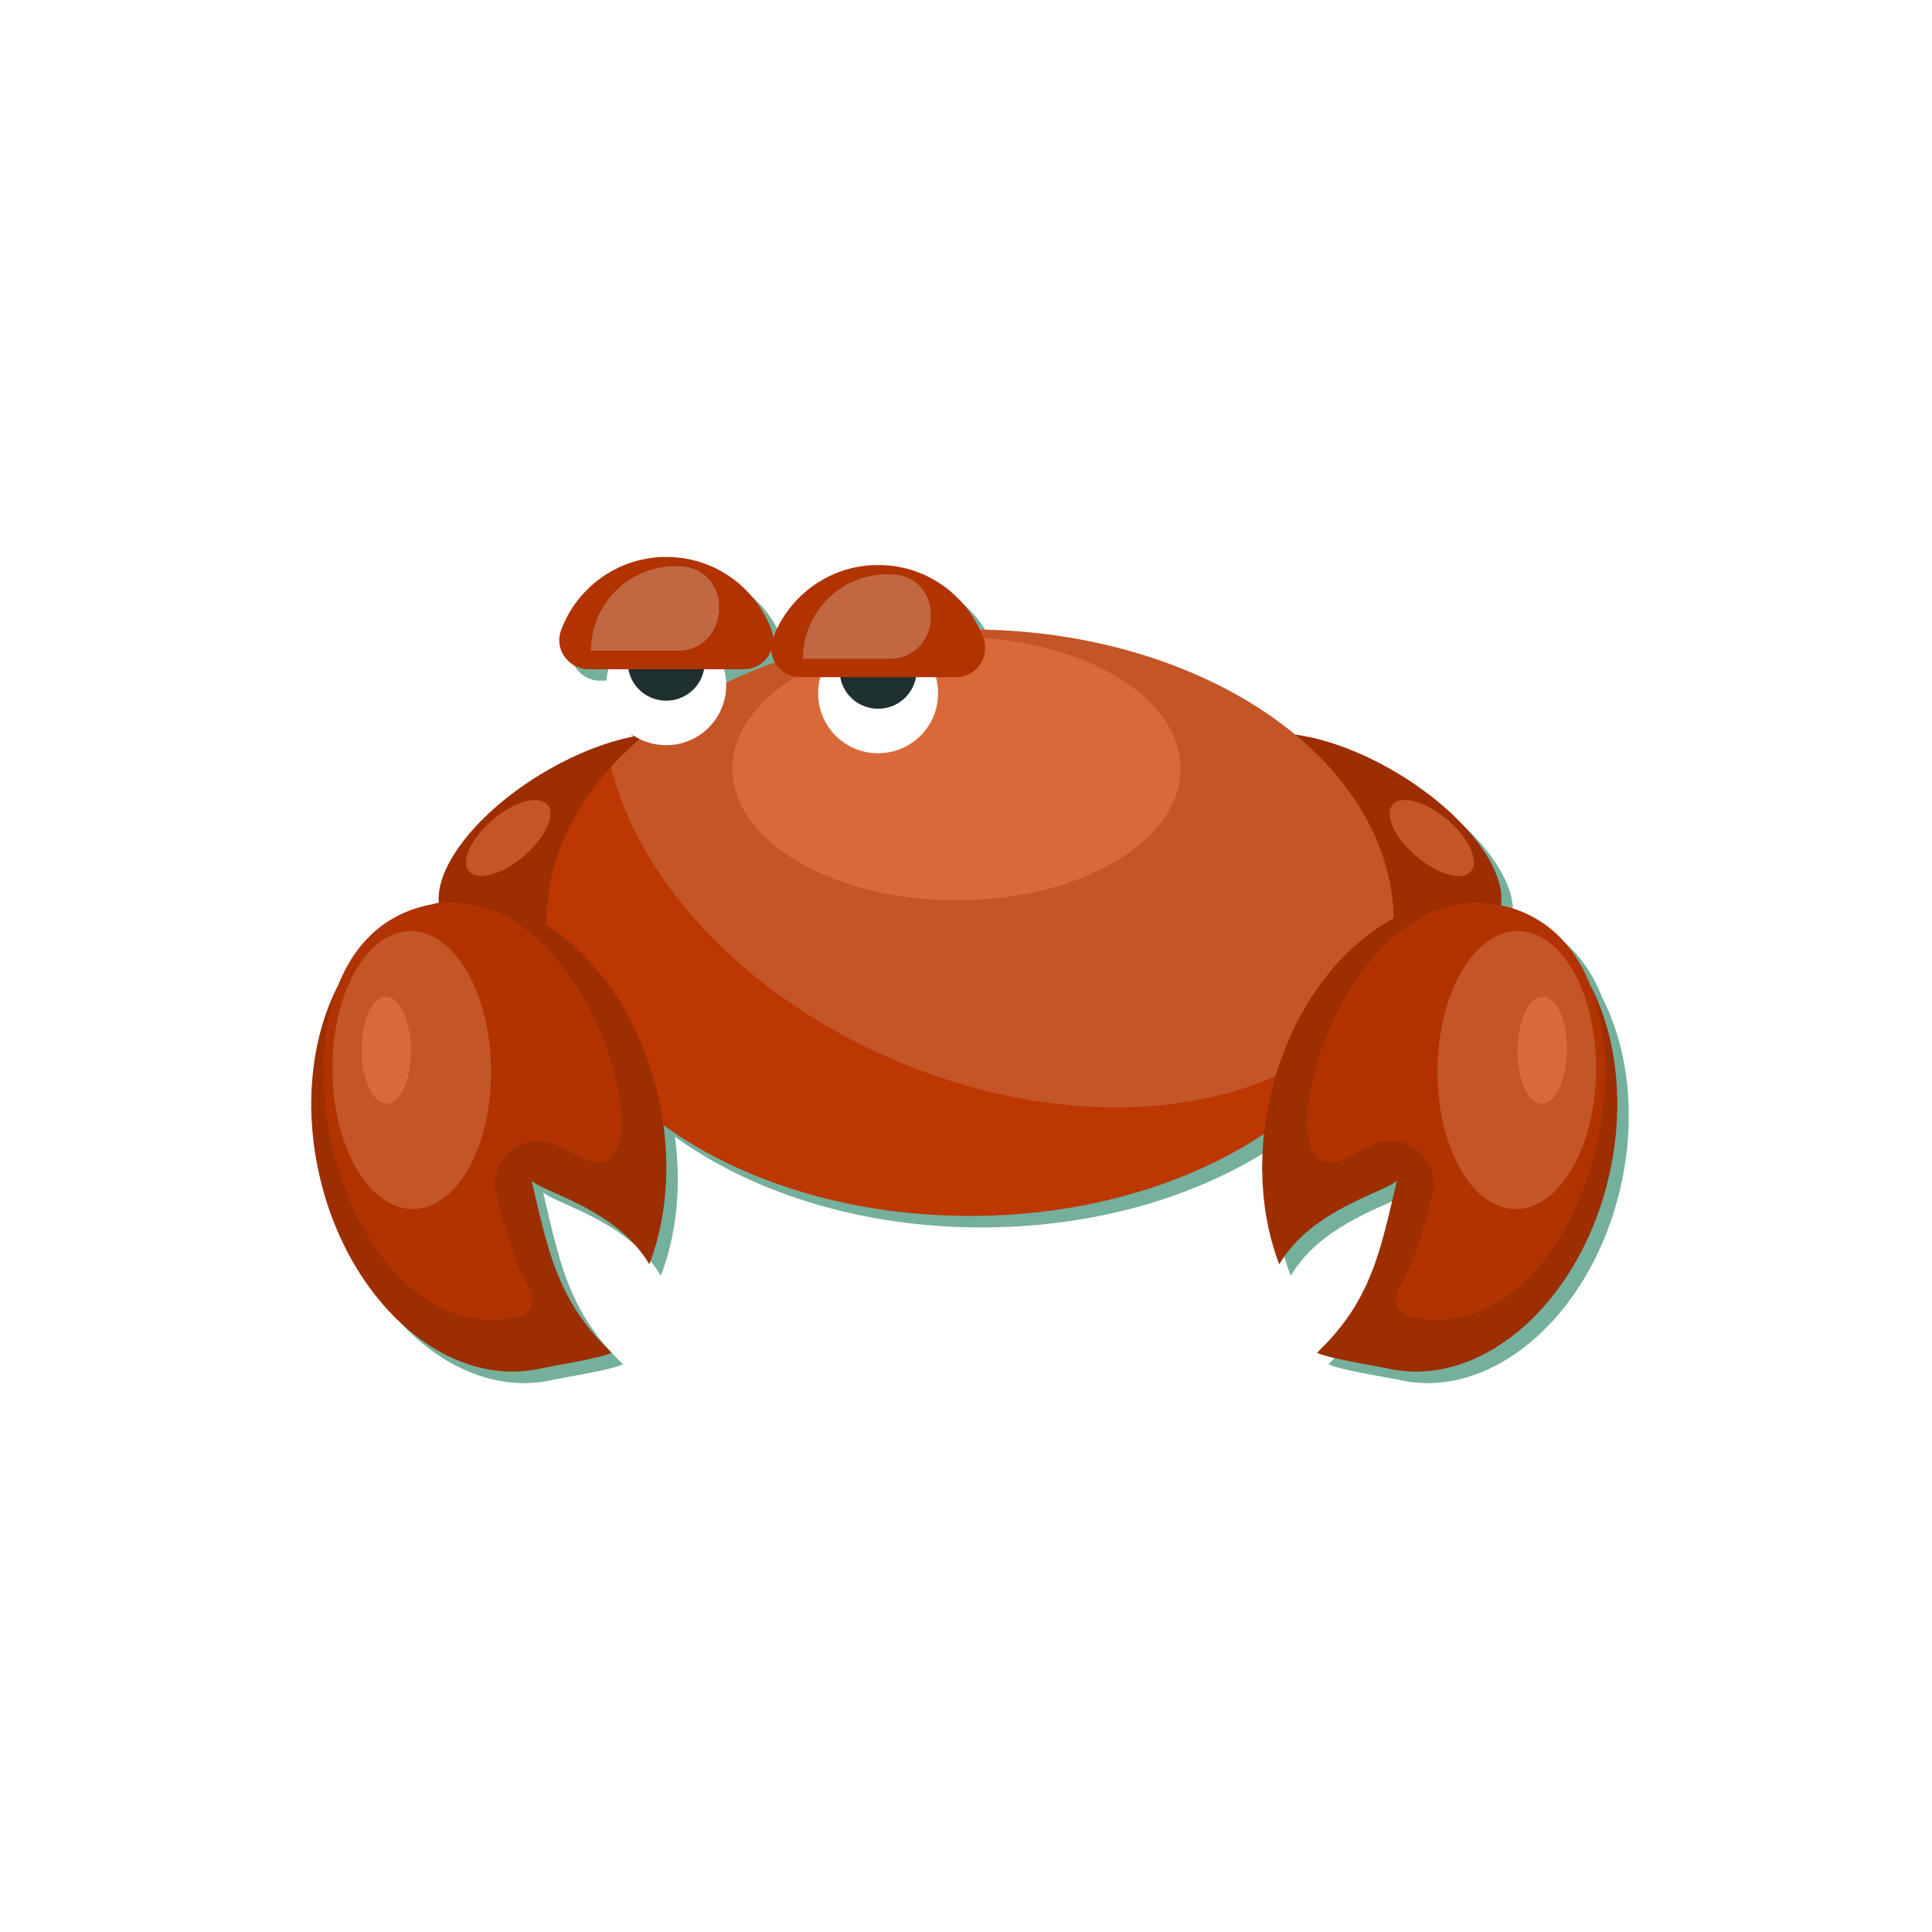 Crab clipart eye. Cdr staring eyes red